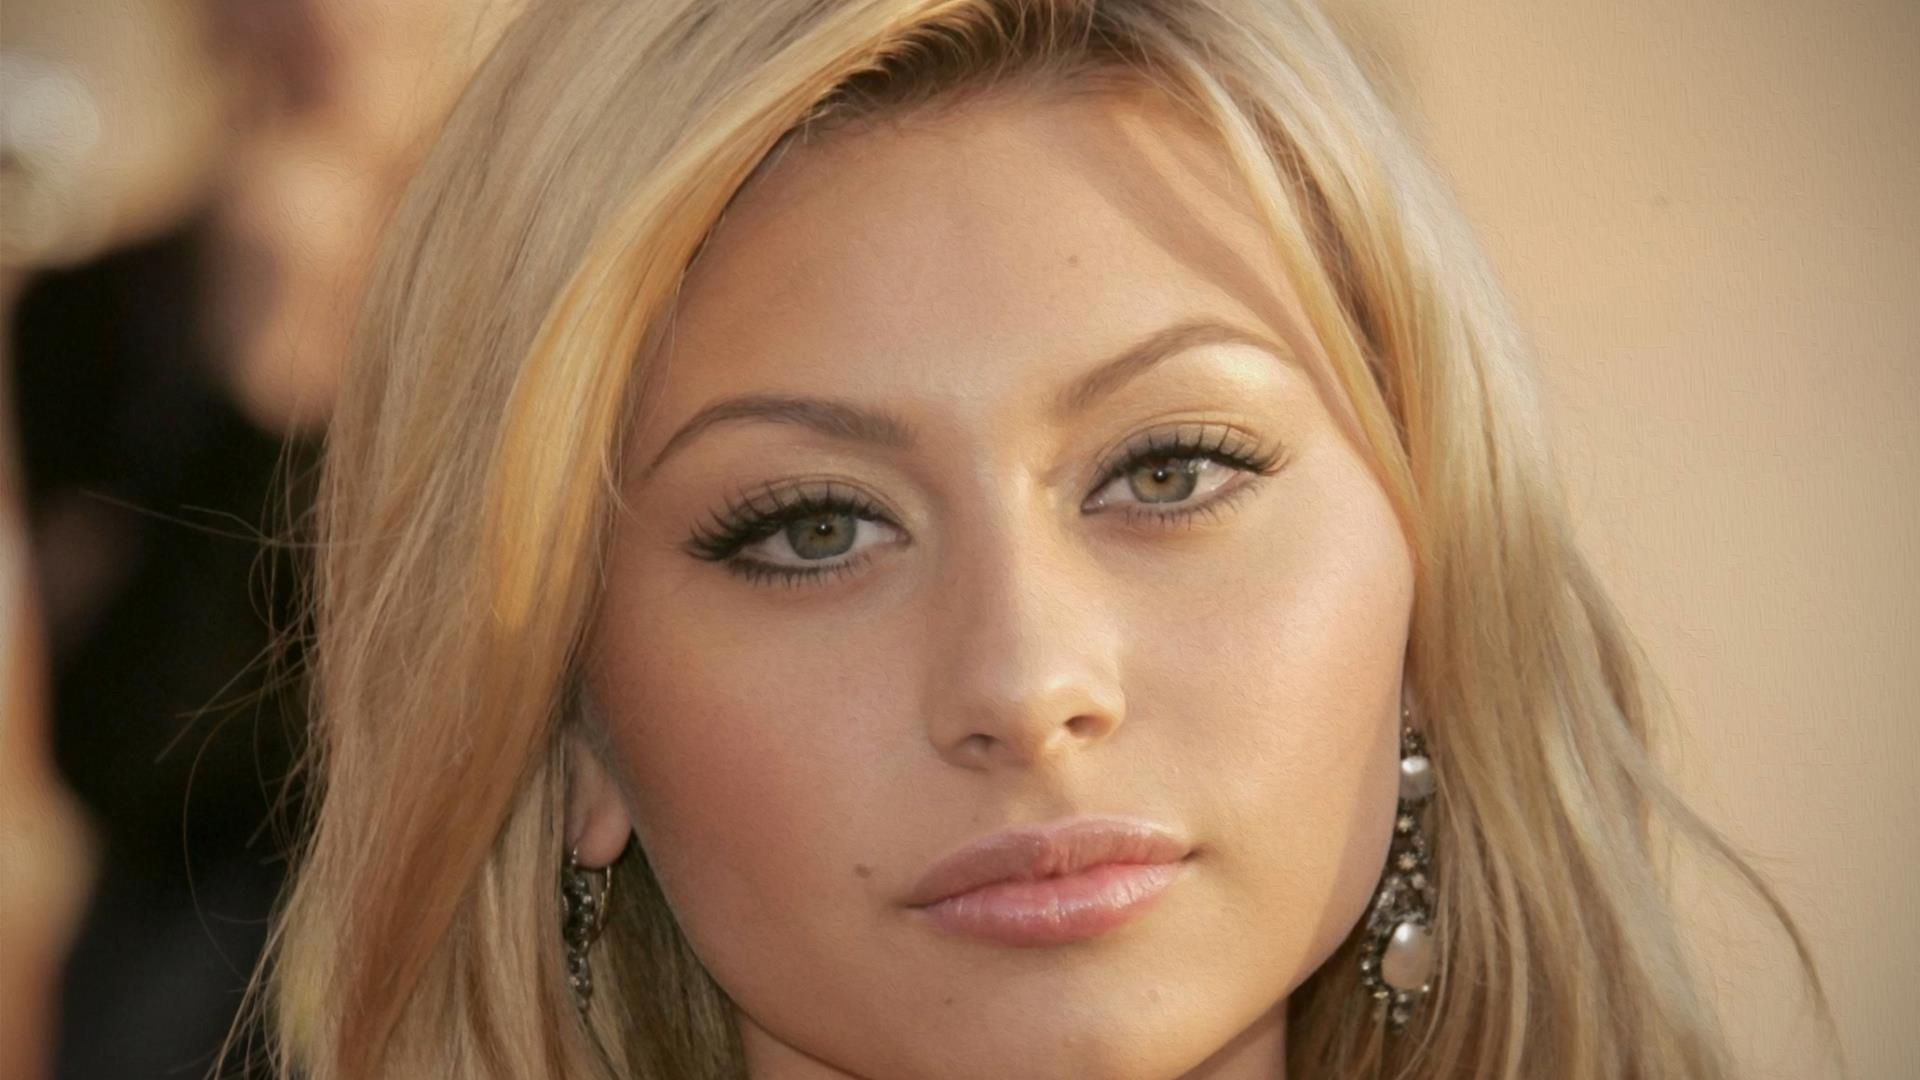 Aly Michalka Sad Face Closeup Wallpaper